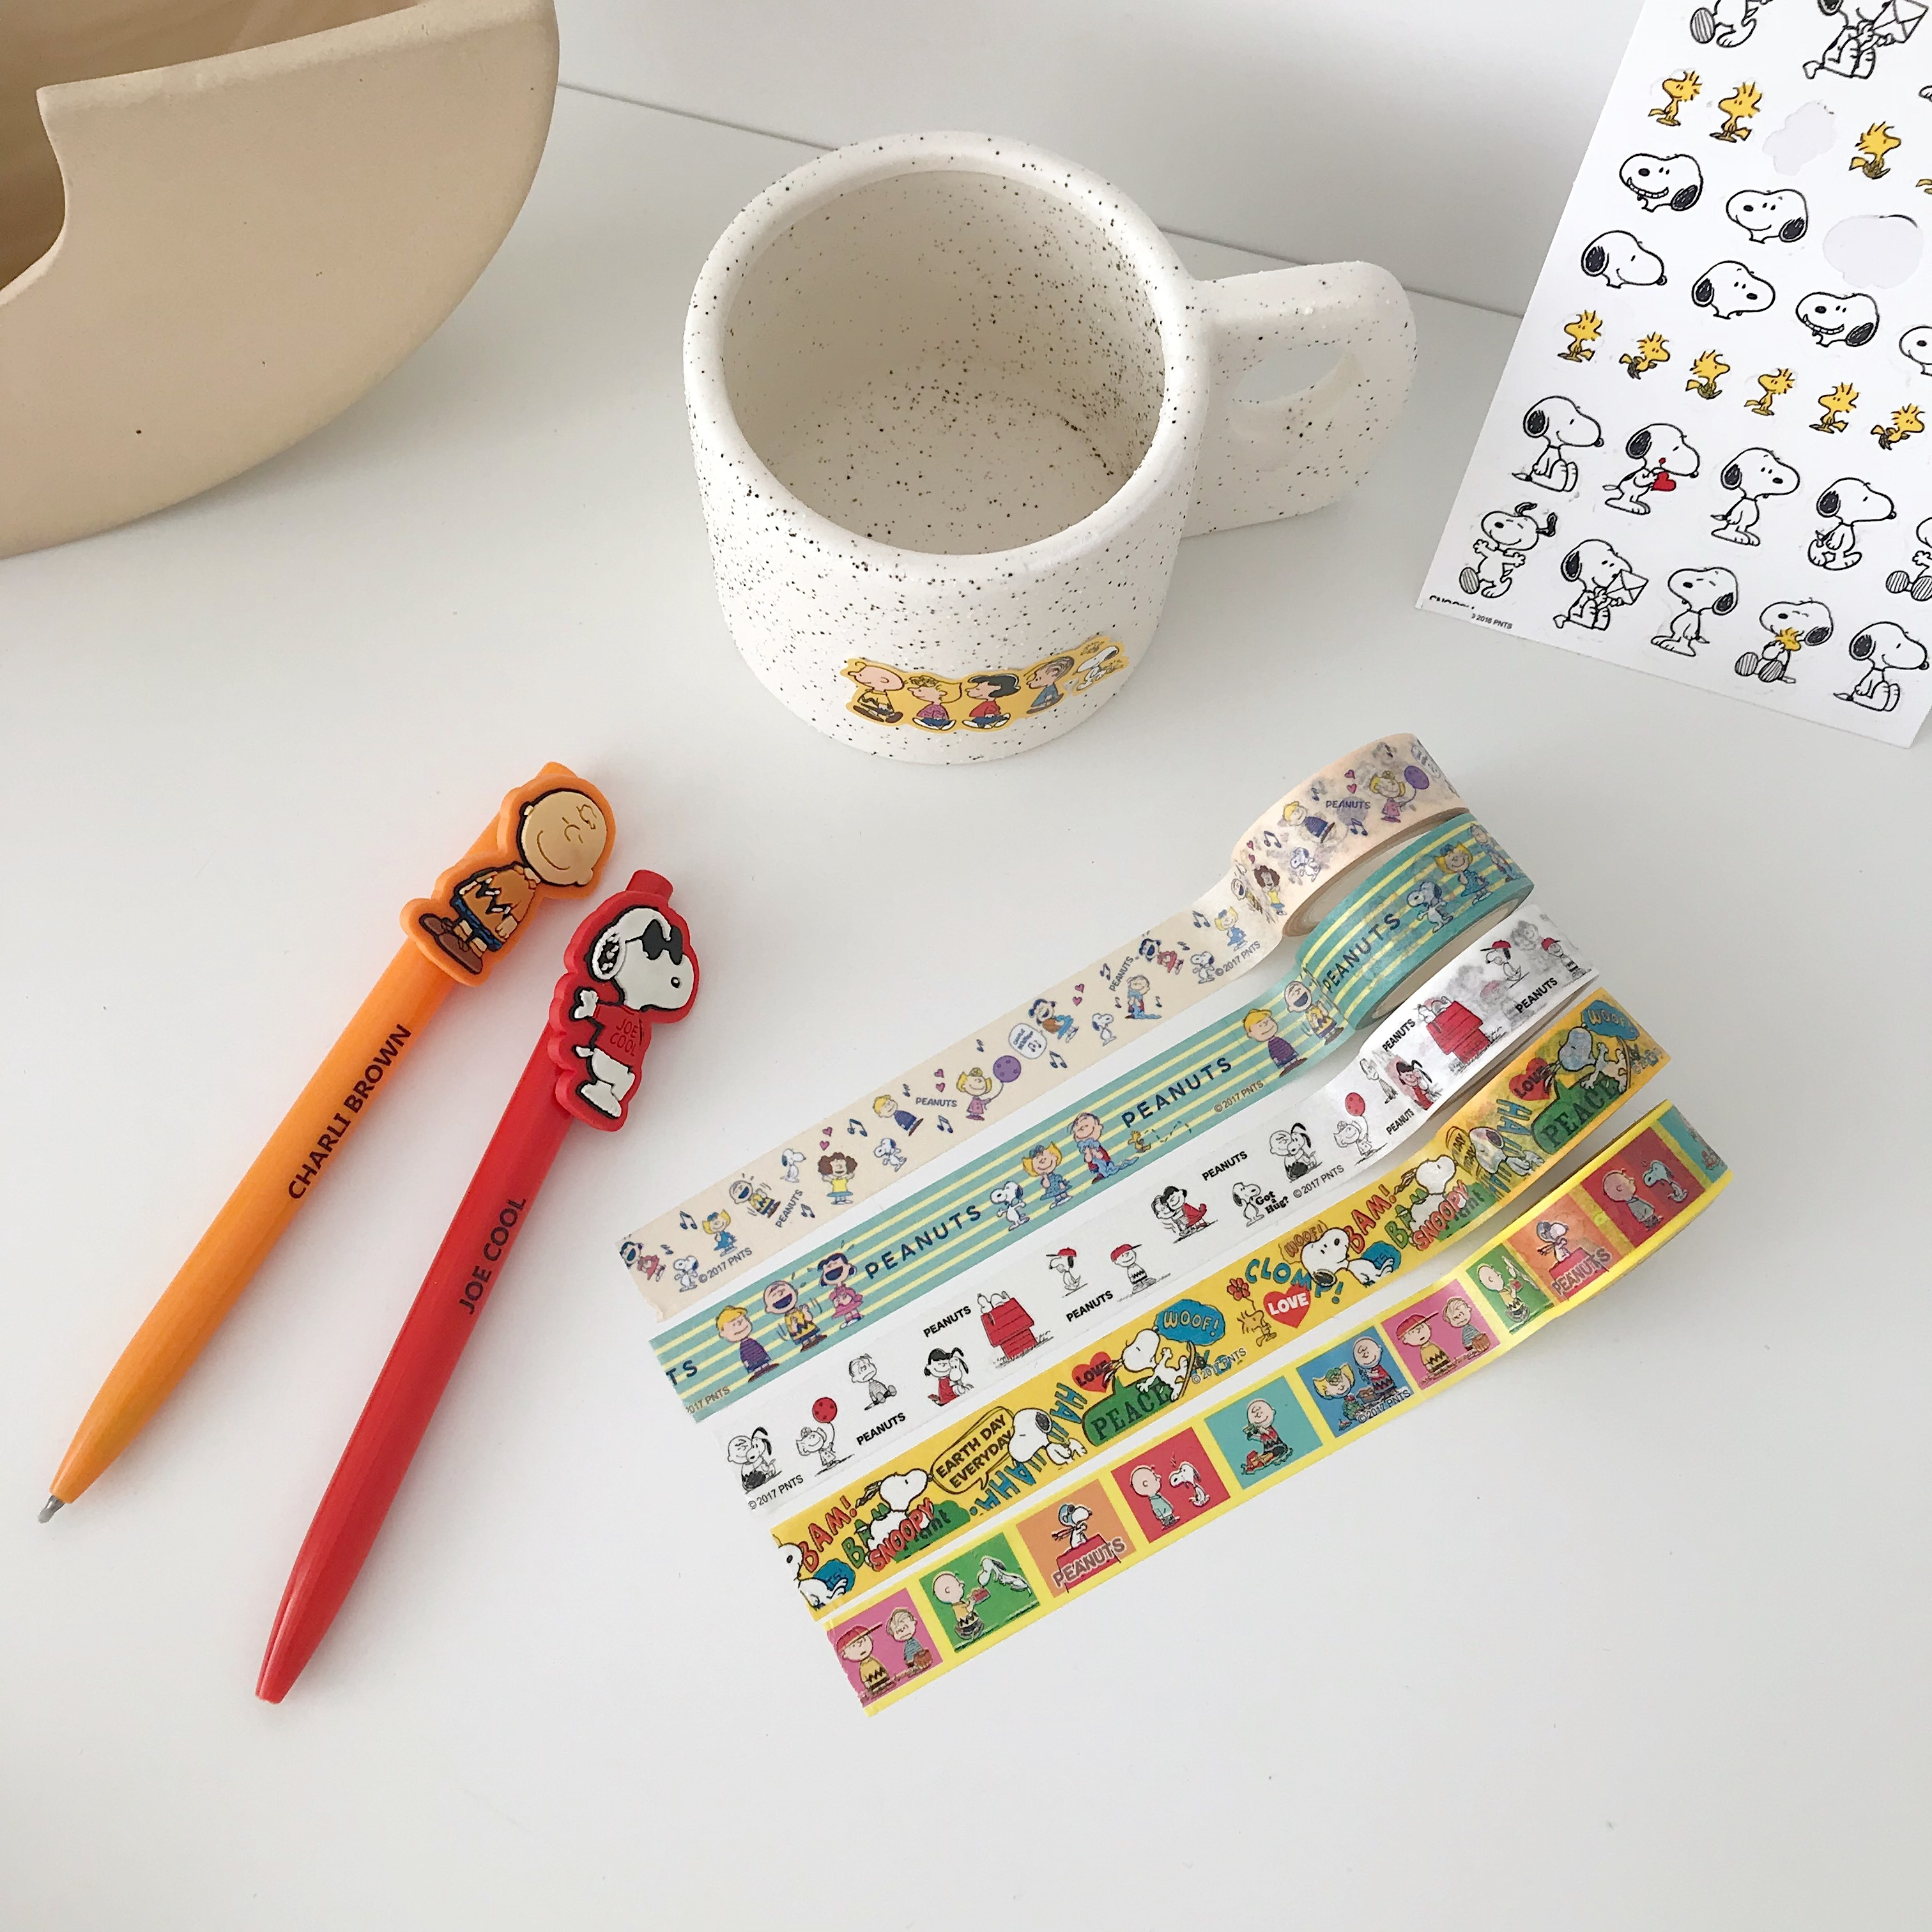 SIXONE Peanut Cartoon Characters Washi Tape Rogue Dog Handbook Decorative Tapes Stationery Office & School Supplies